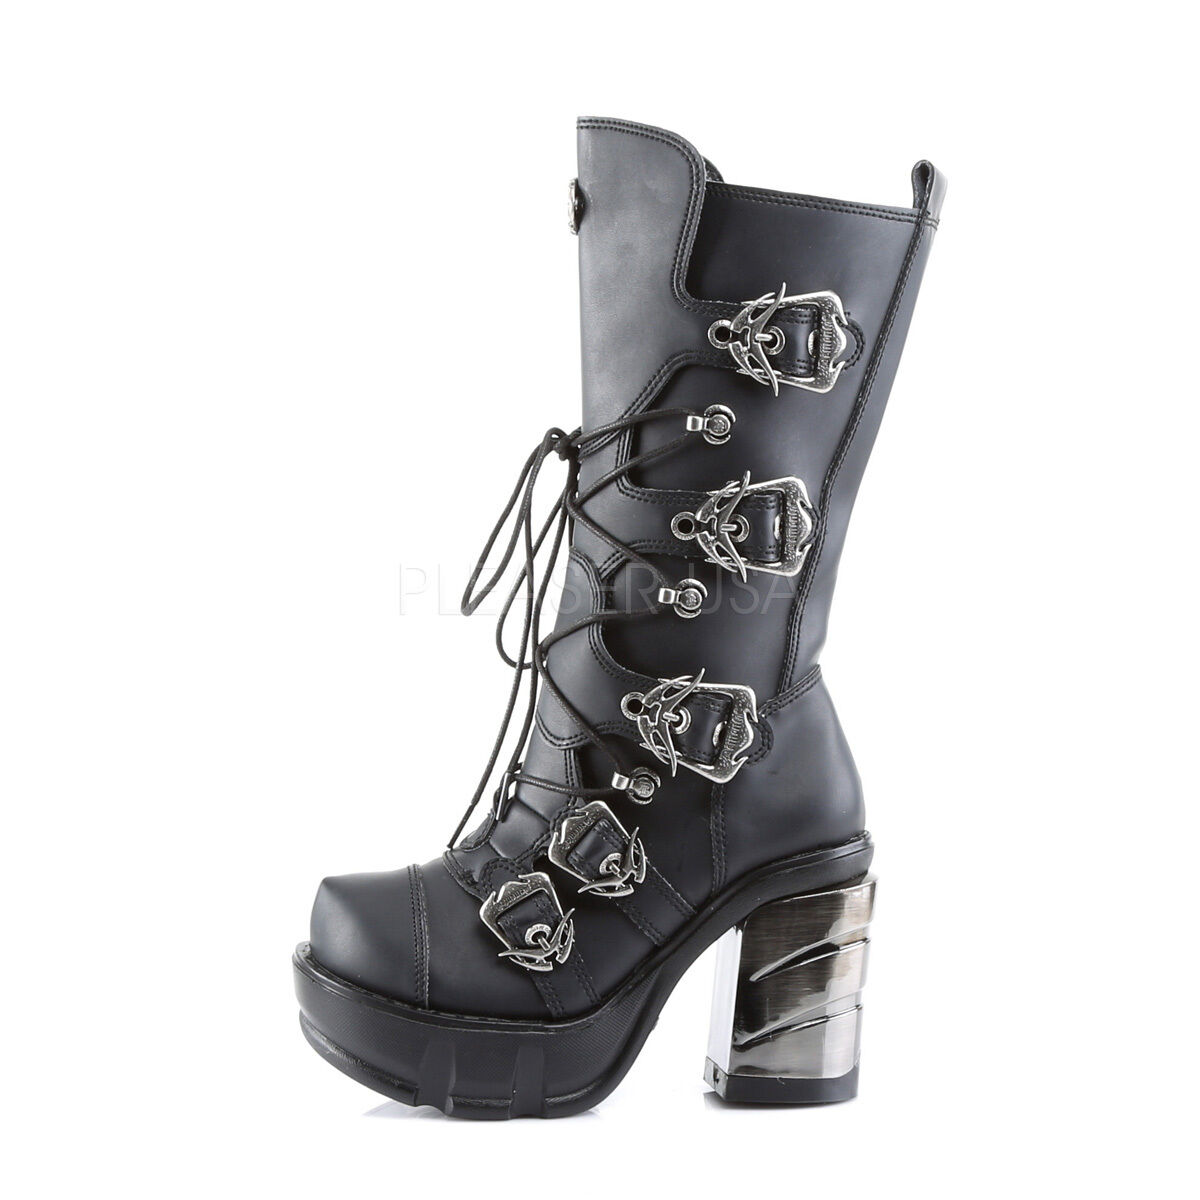 Demonia 3.5  Platform Block Heel Chromed ABS Buckle Calf Boots Cyber Goth 6-12